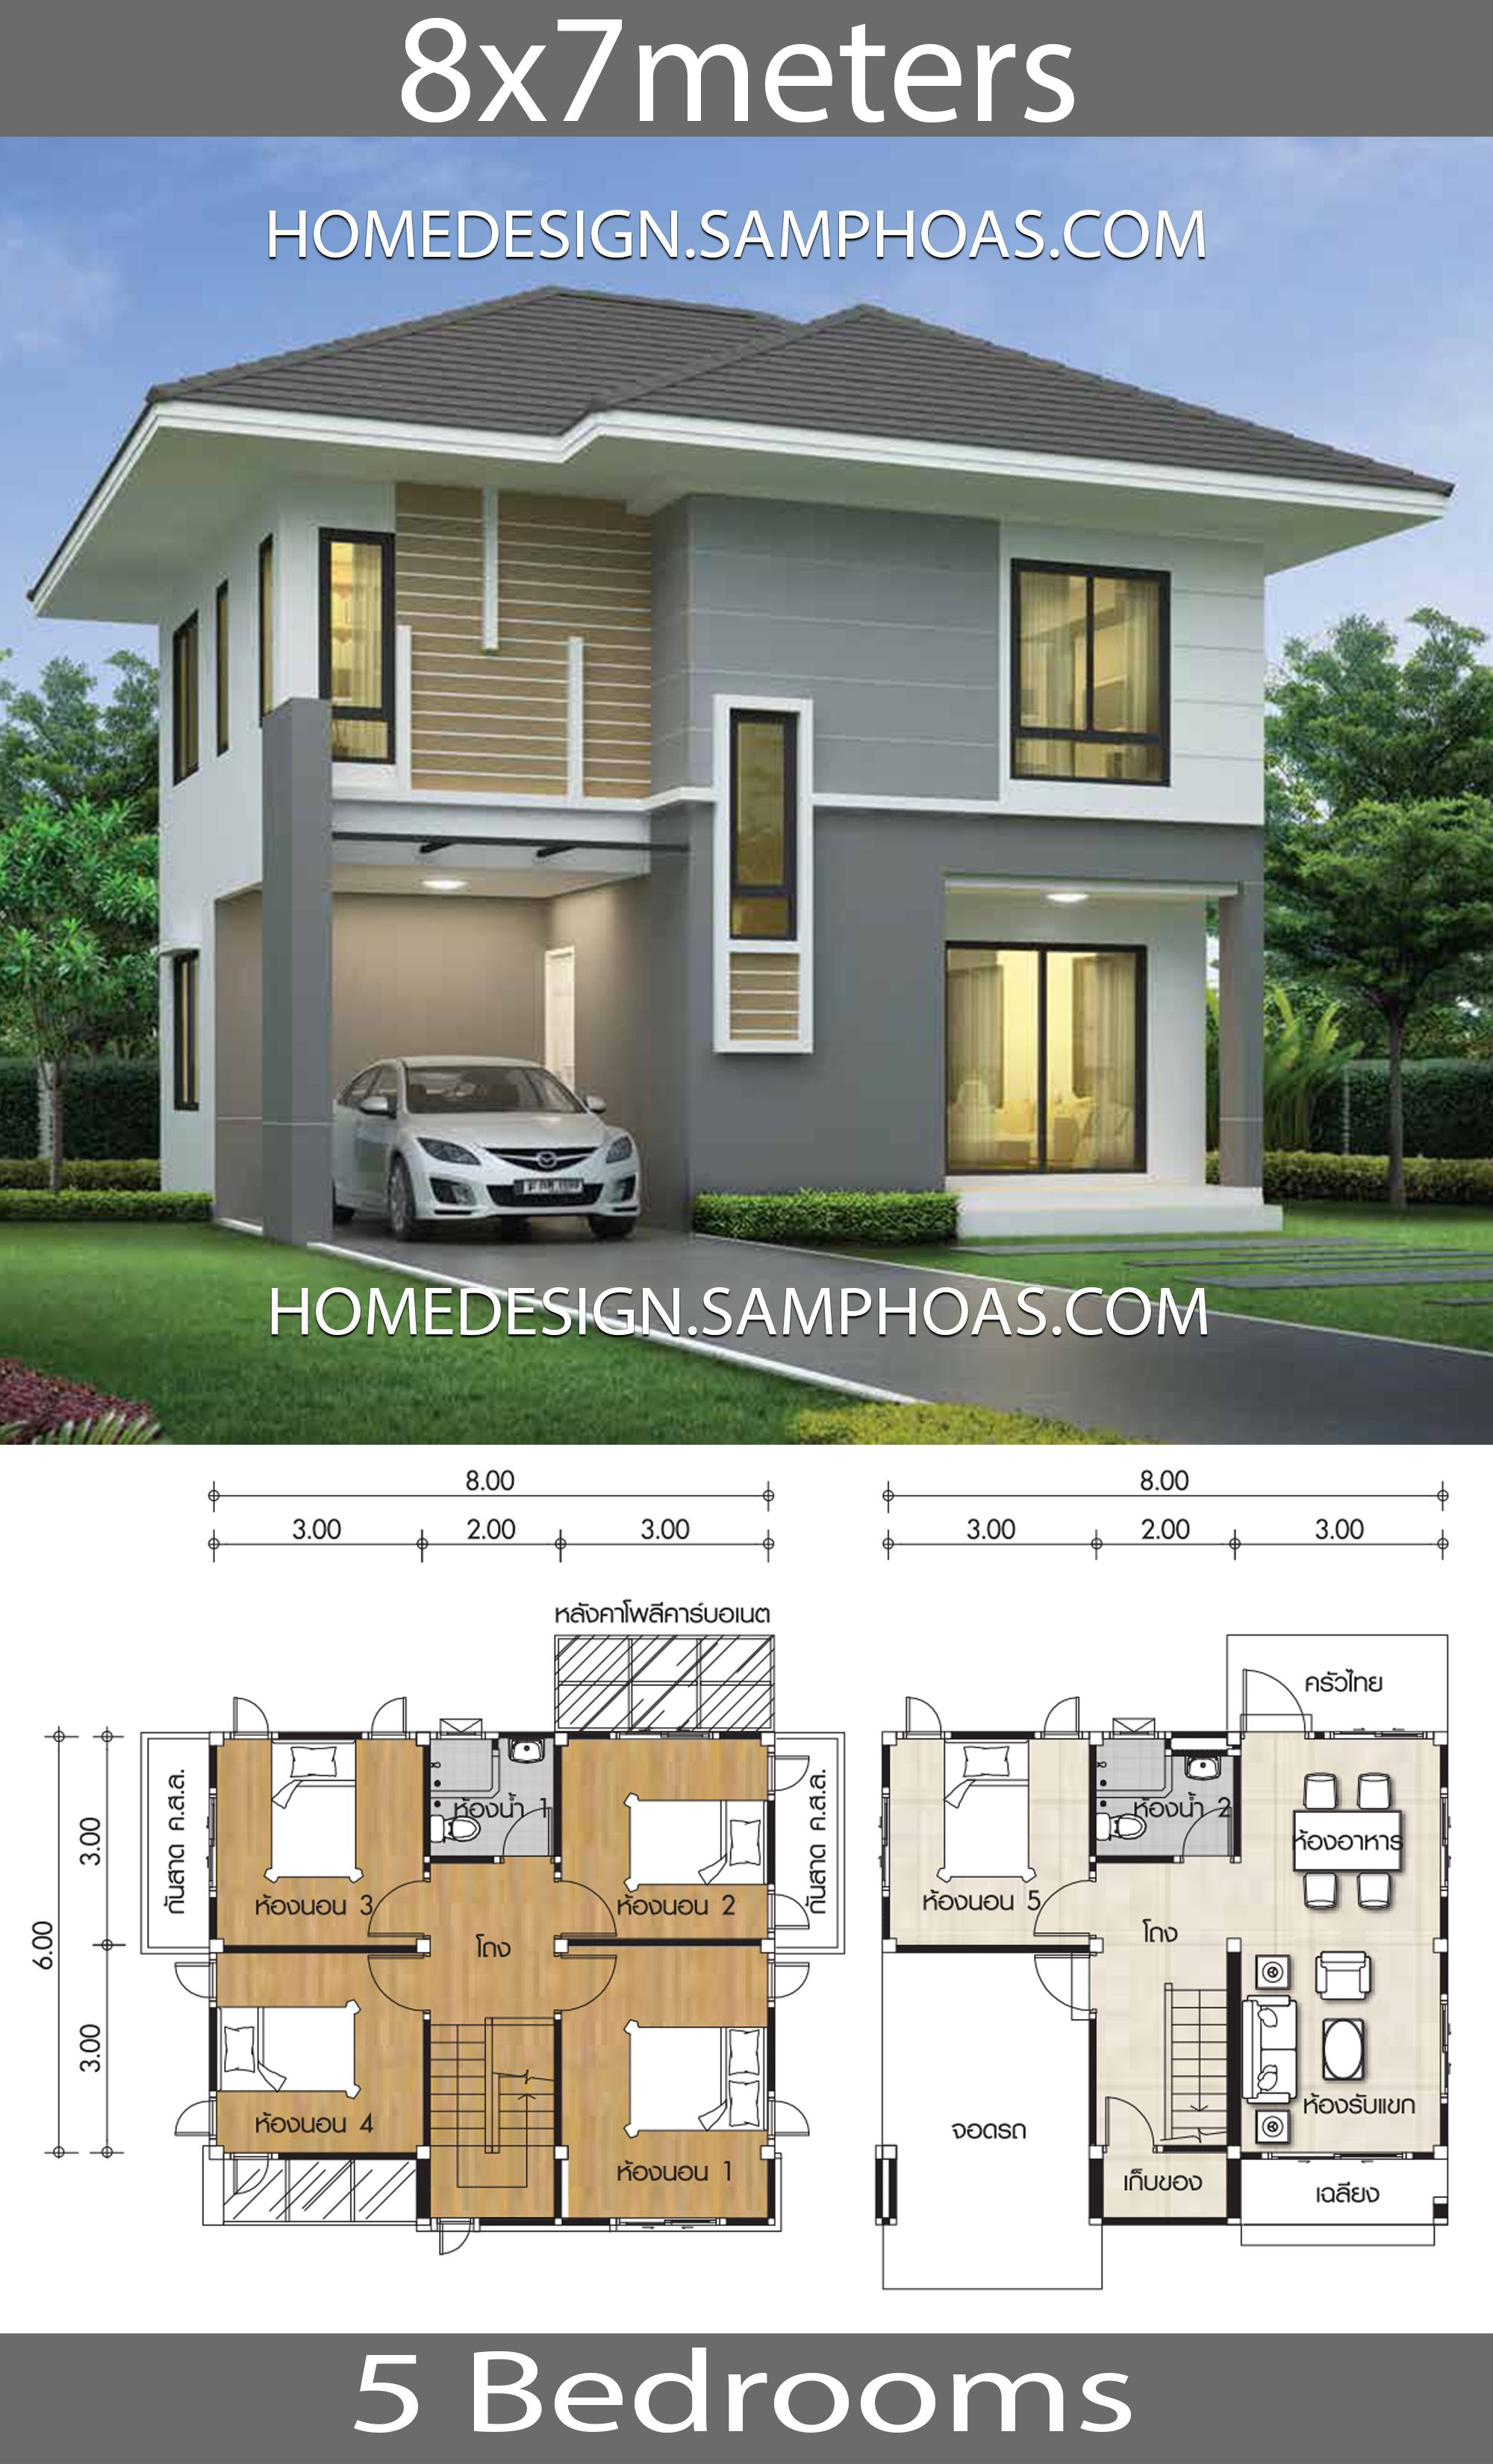 Small House Plans 7x8m With 5 Bedrooms House Idea In 2020 2 Storey House Design Architectural House Plans House Layout Plans